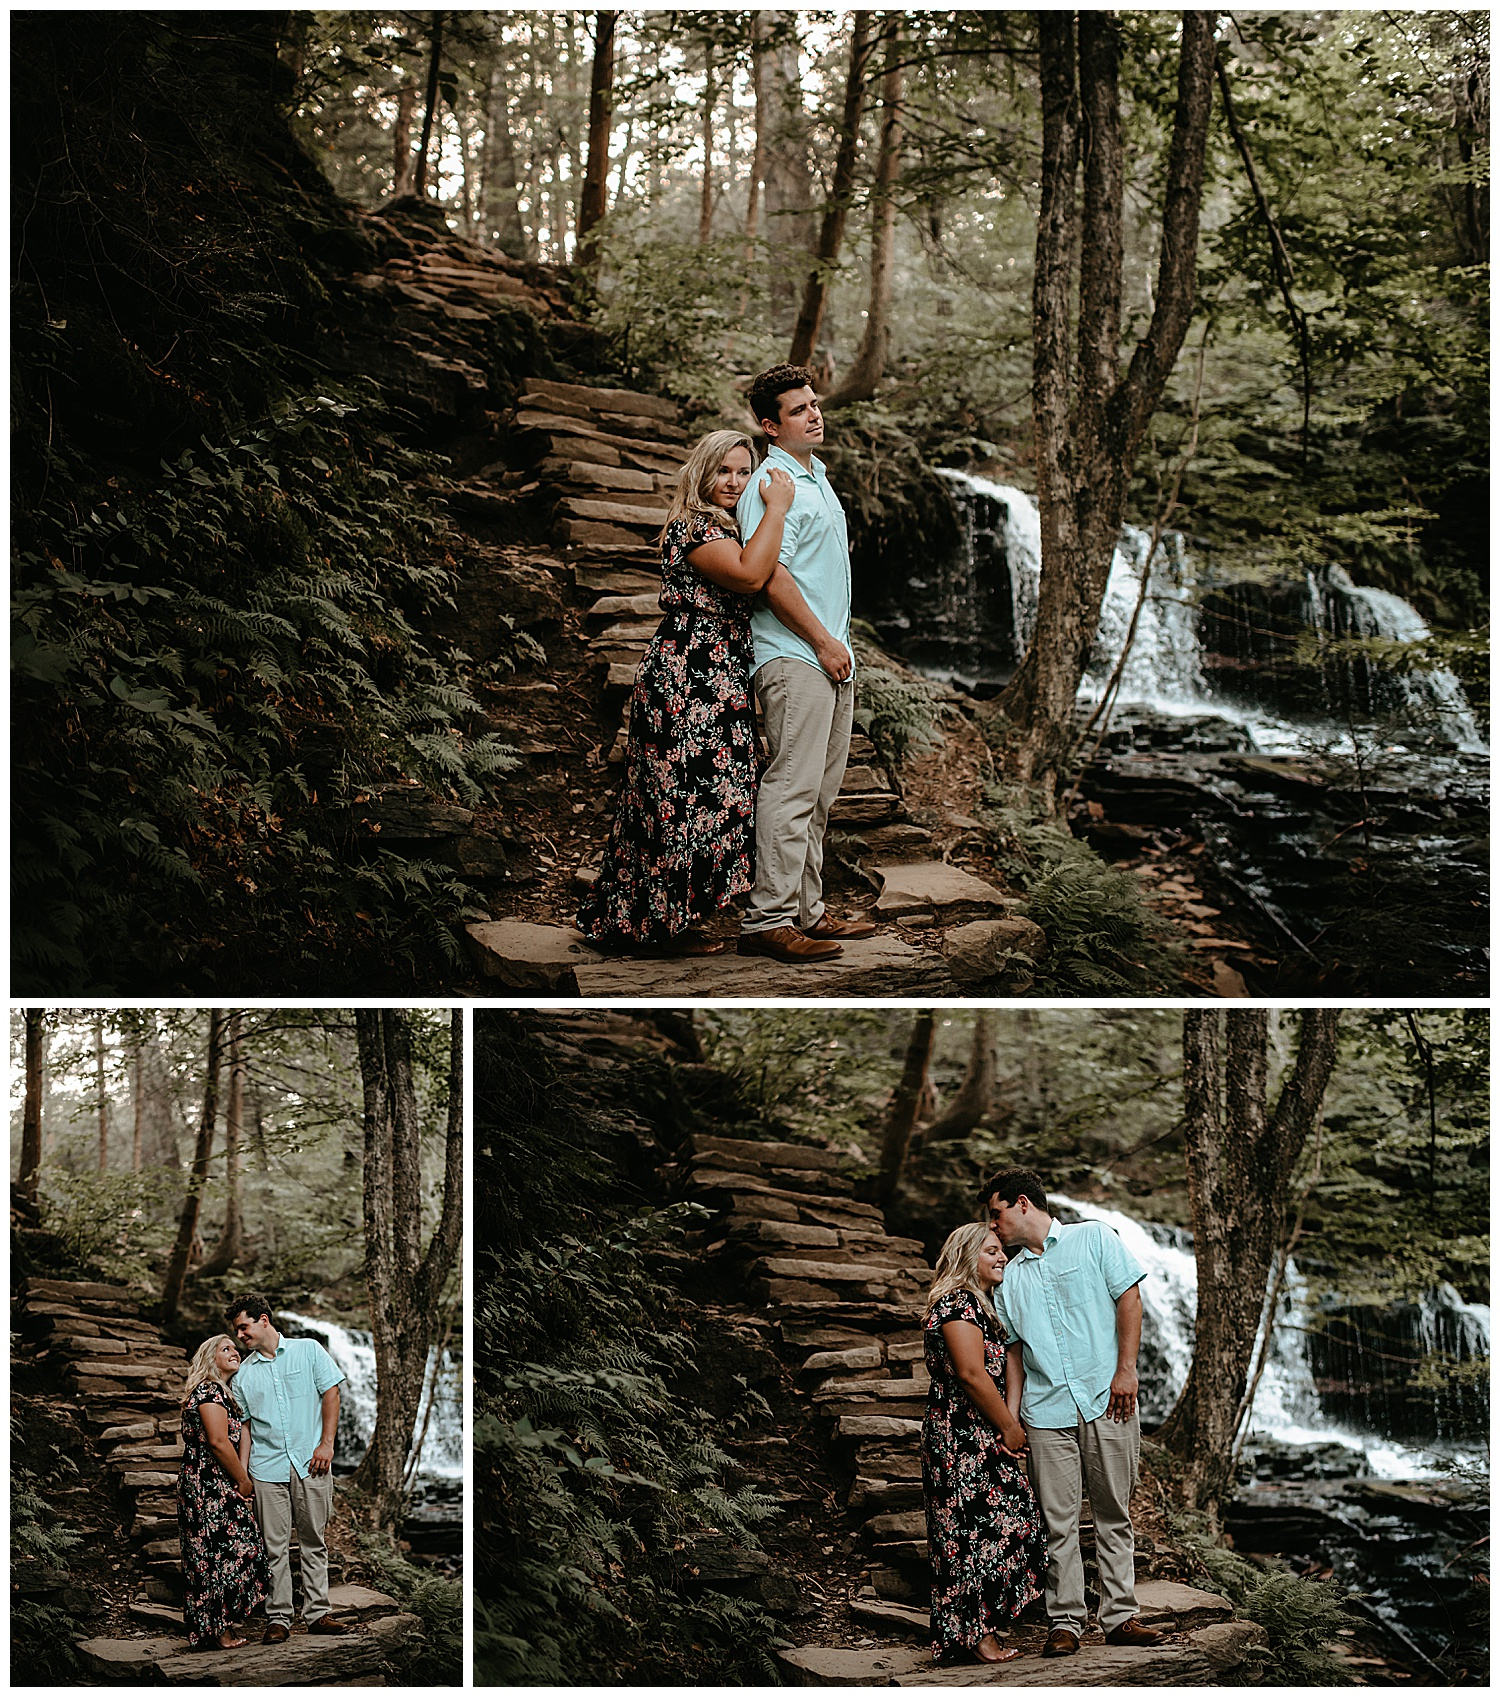 NEPA-Bloomsburg-Lehigh-Valley-Wedding-Photographer-Engagement-session-at-Ricketts-Glen-State-Park_0012.jpg